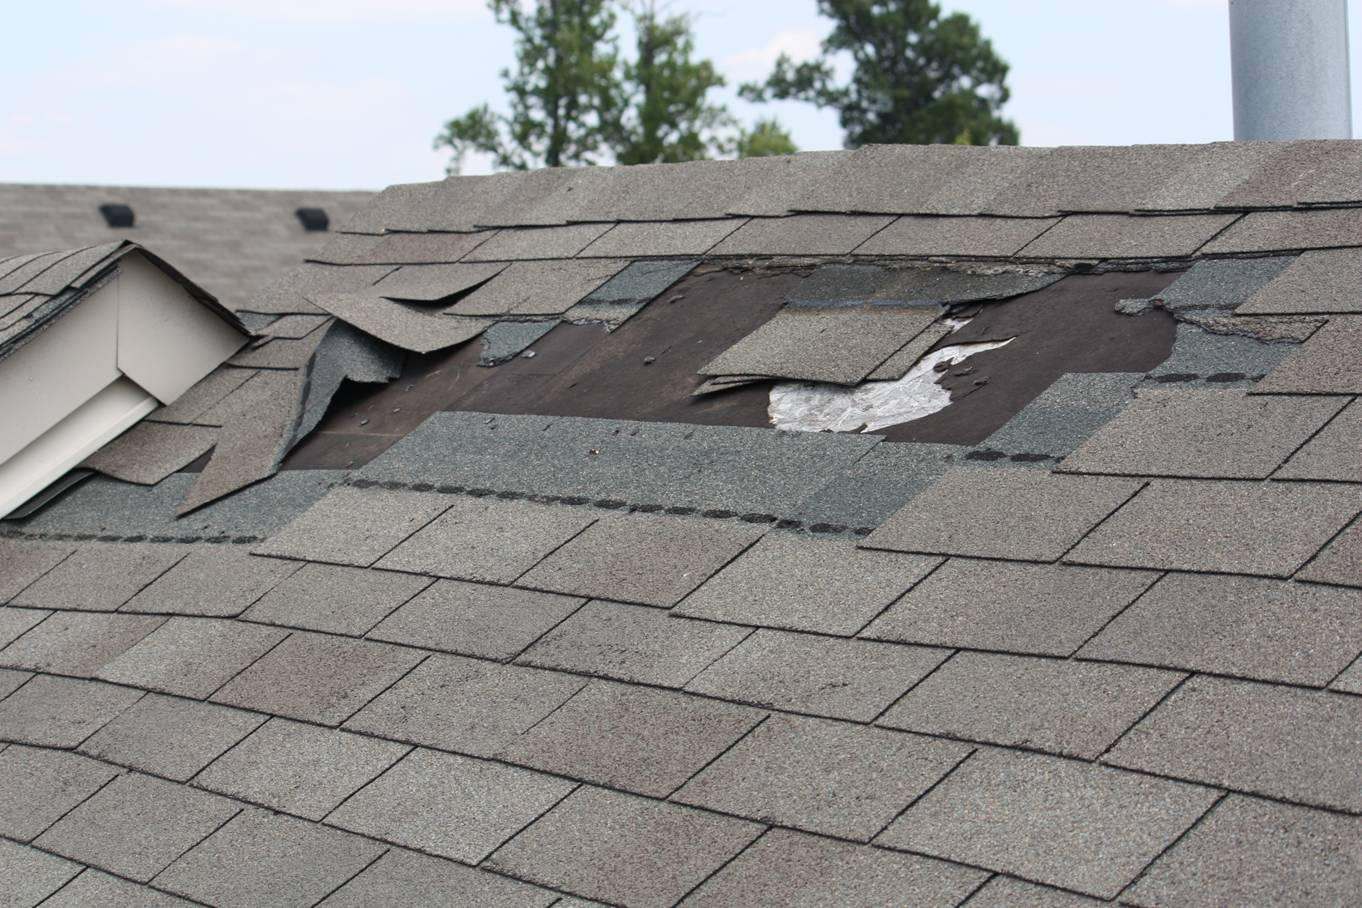 How to Repair Roof Leak Yourself Step by Step